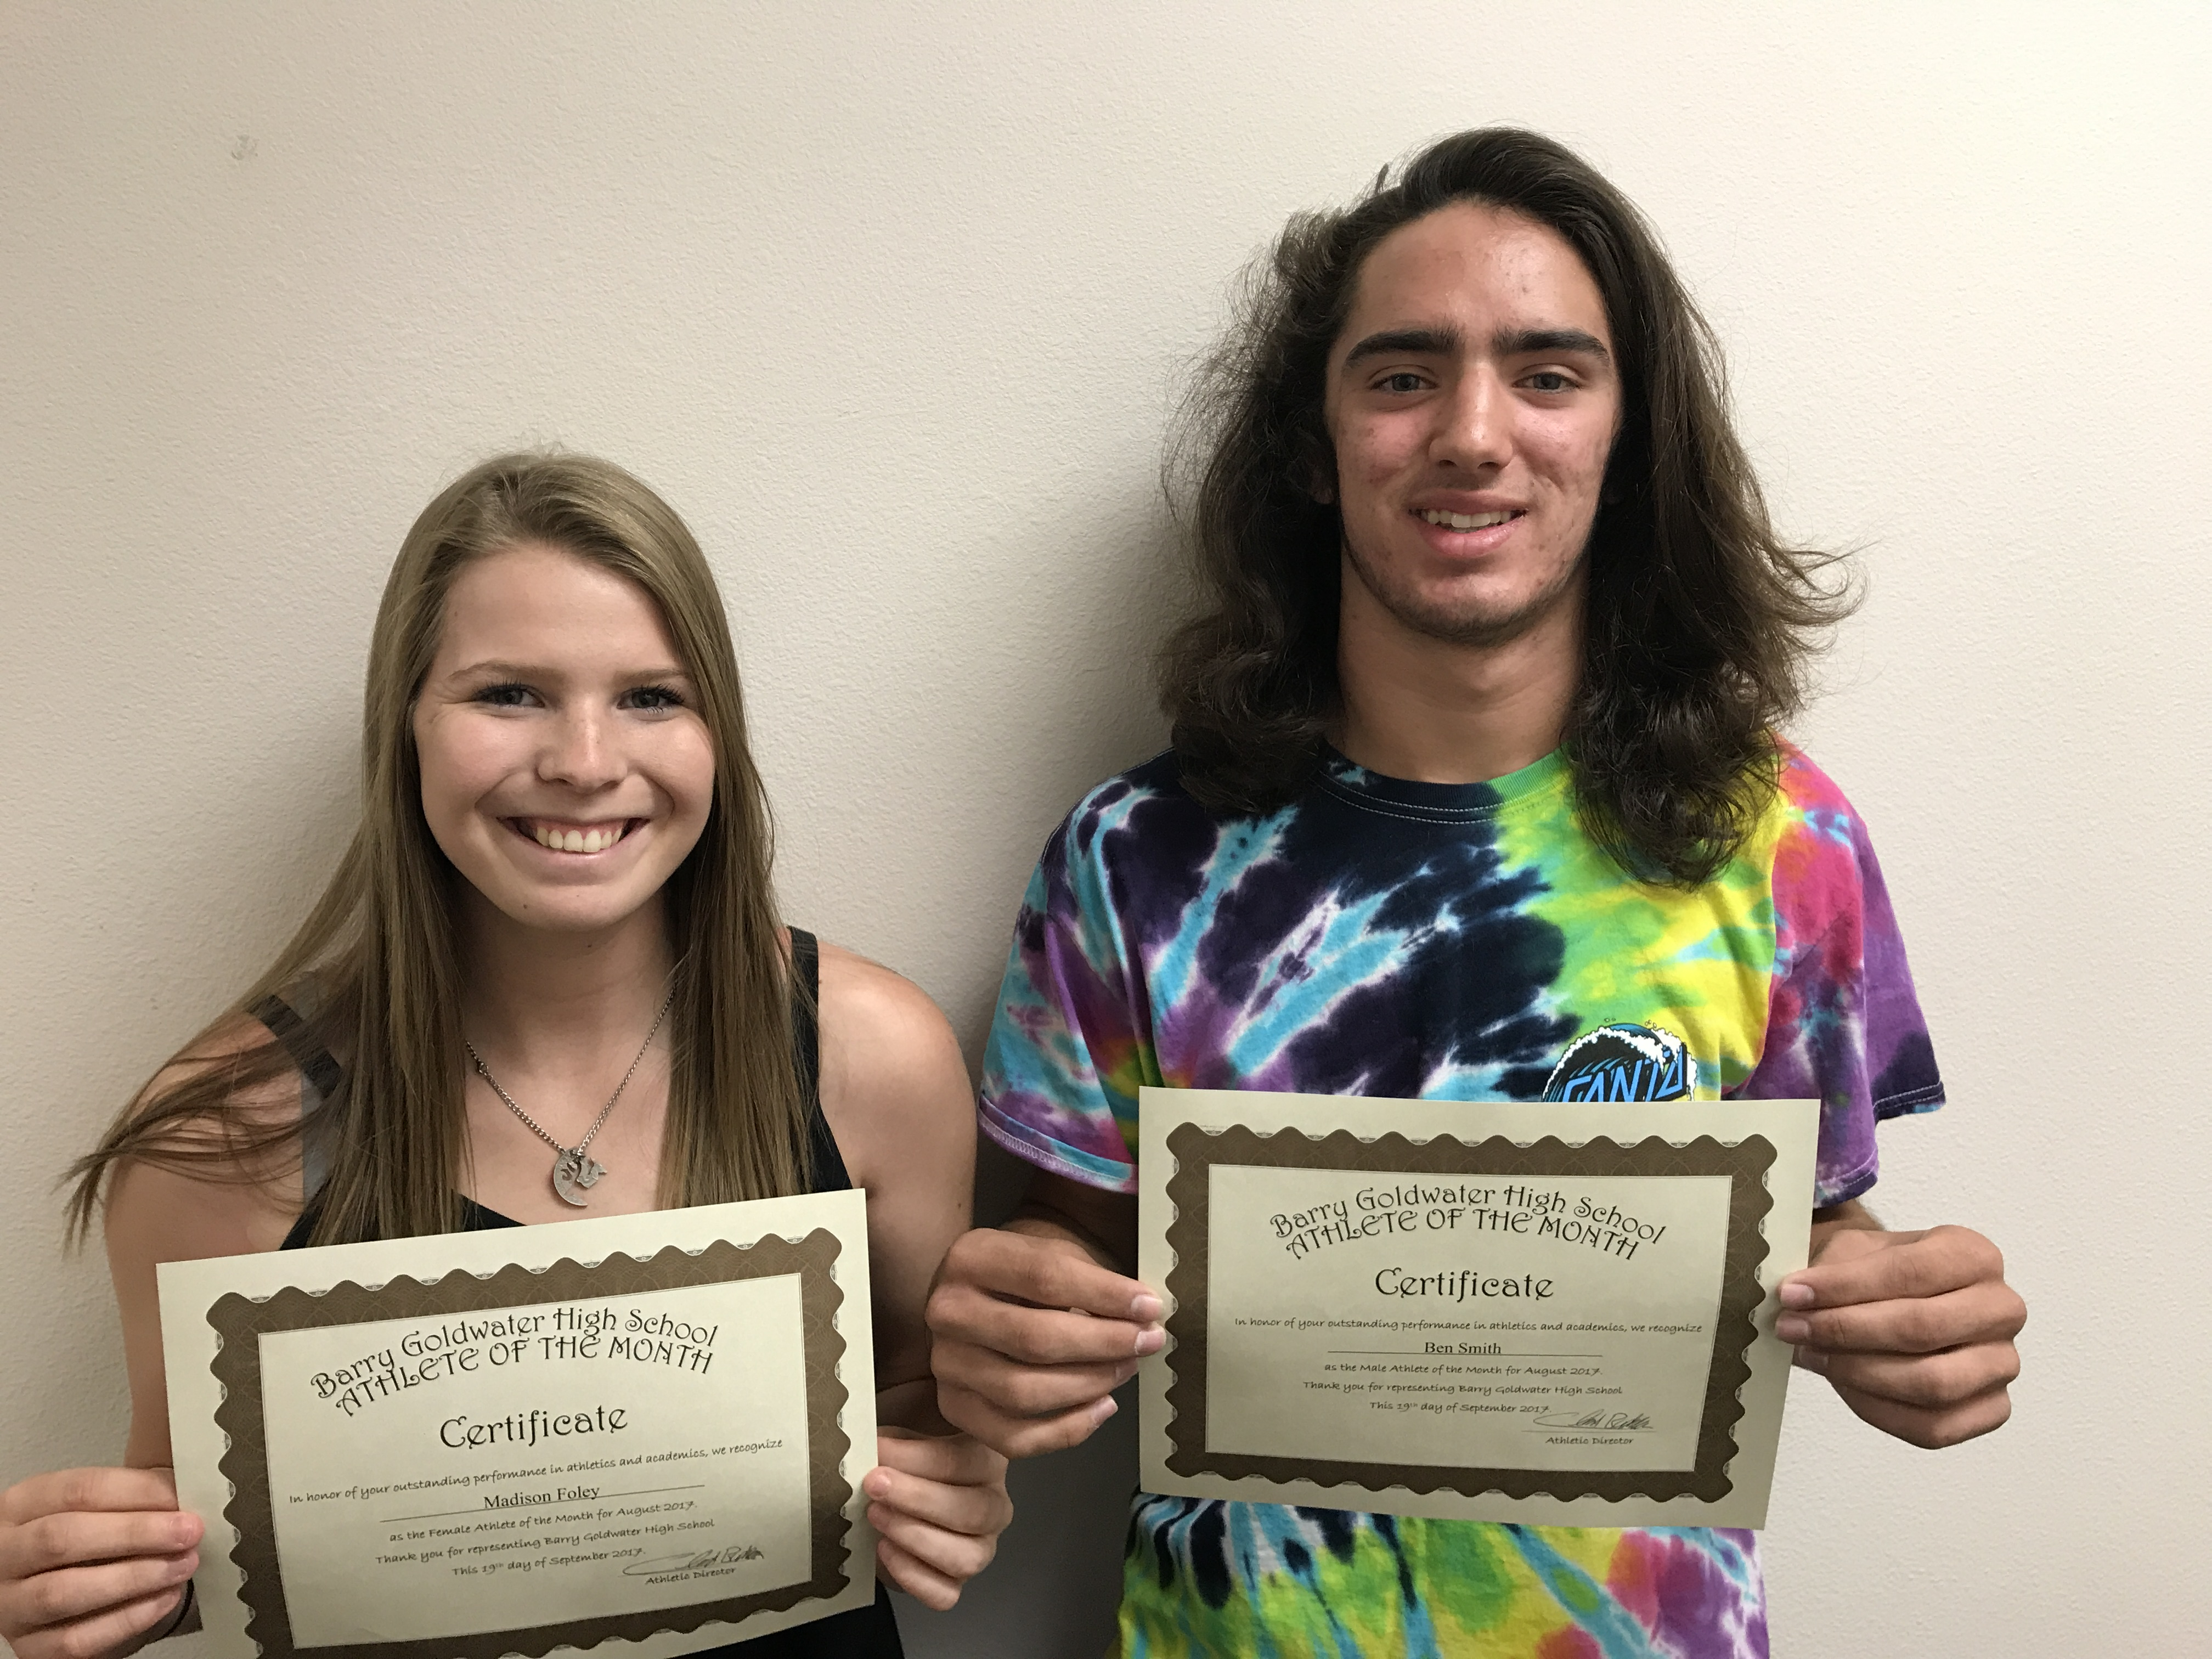 Madison Foley and Ben Smith named August Athletes of the Month